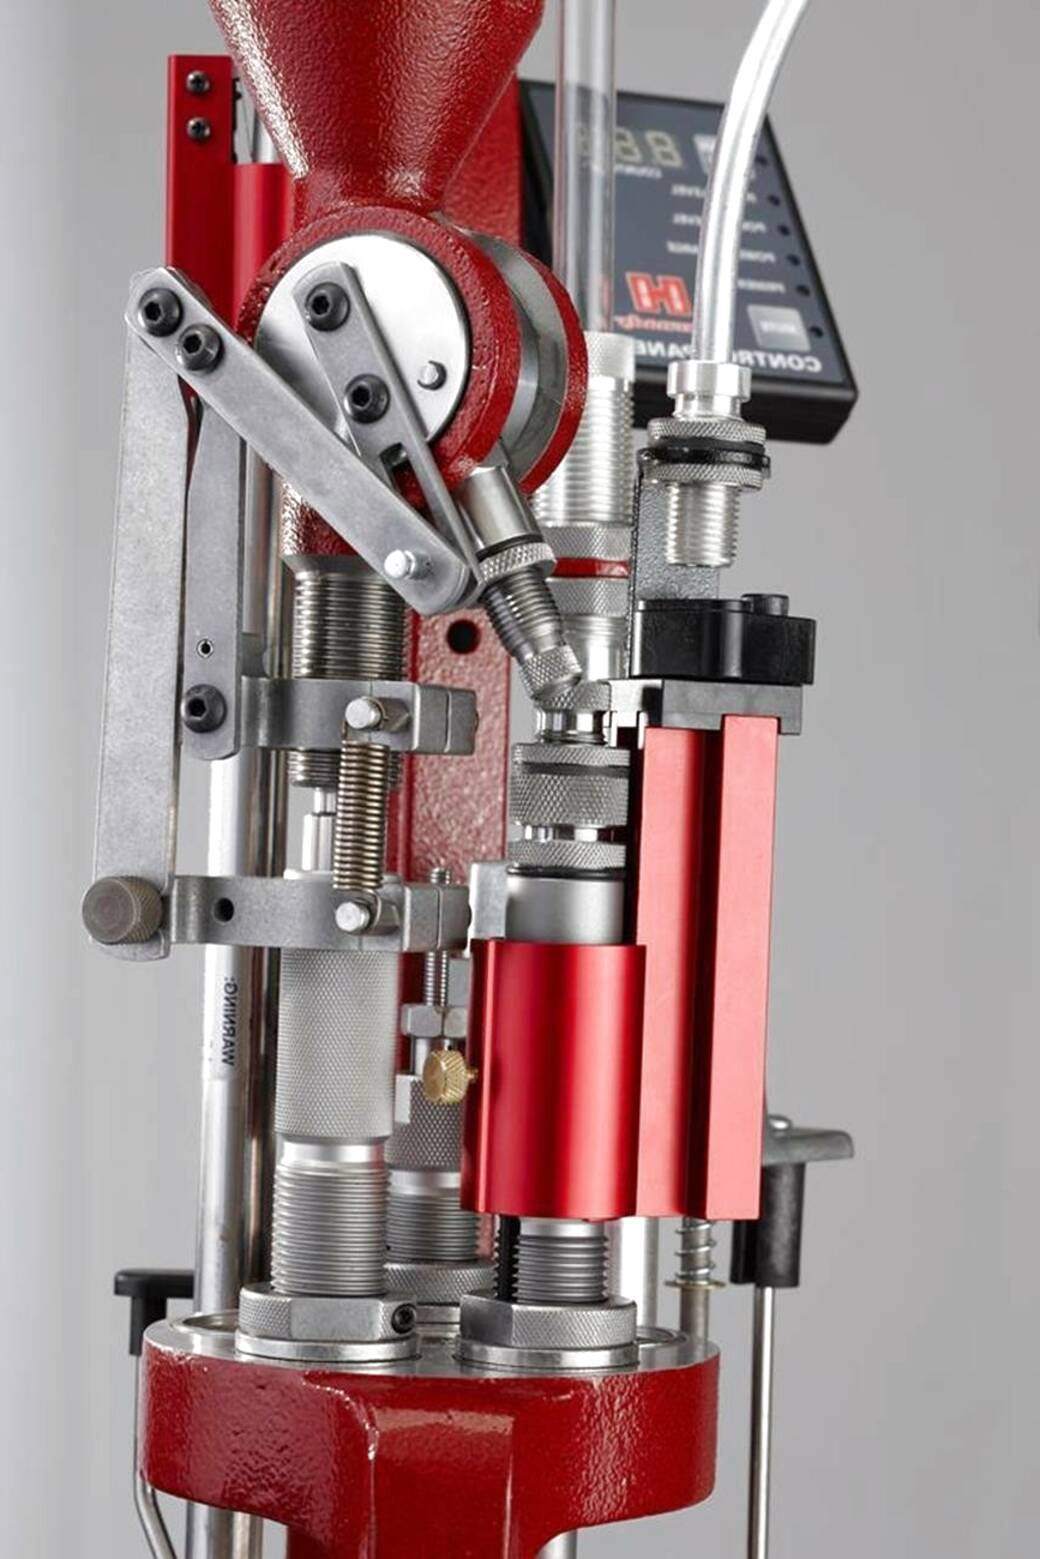 hornady press for sale